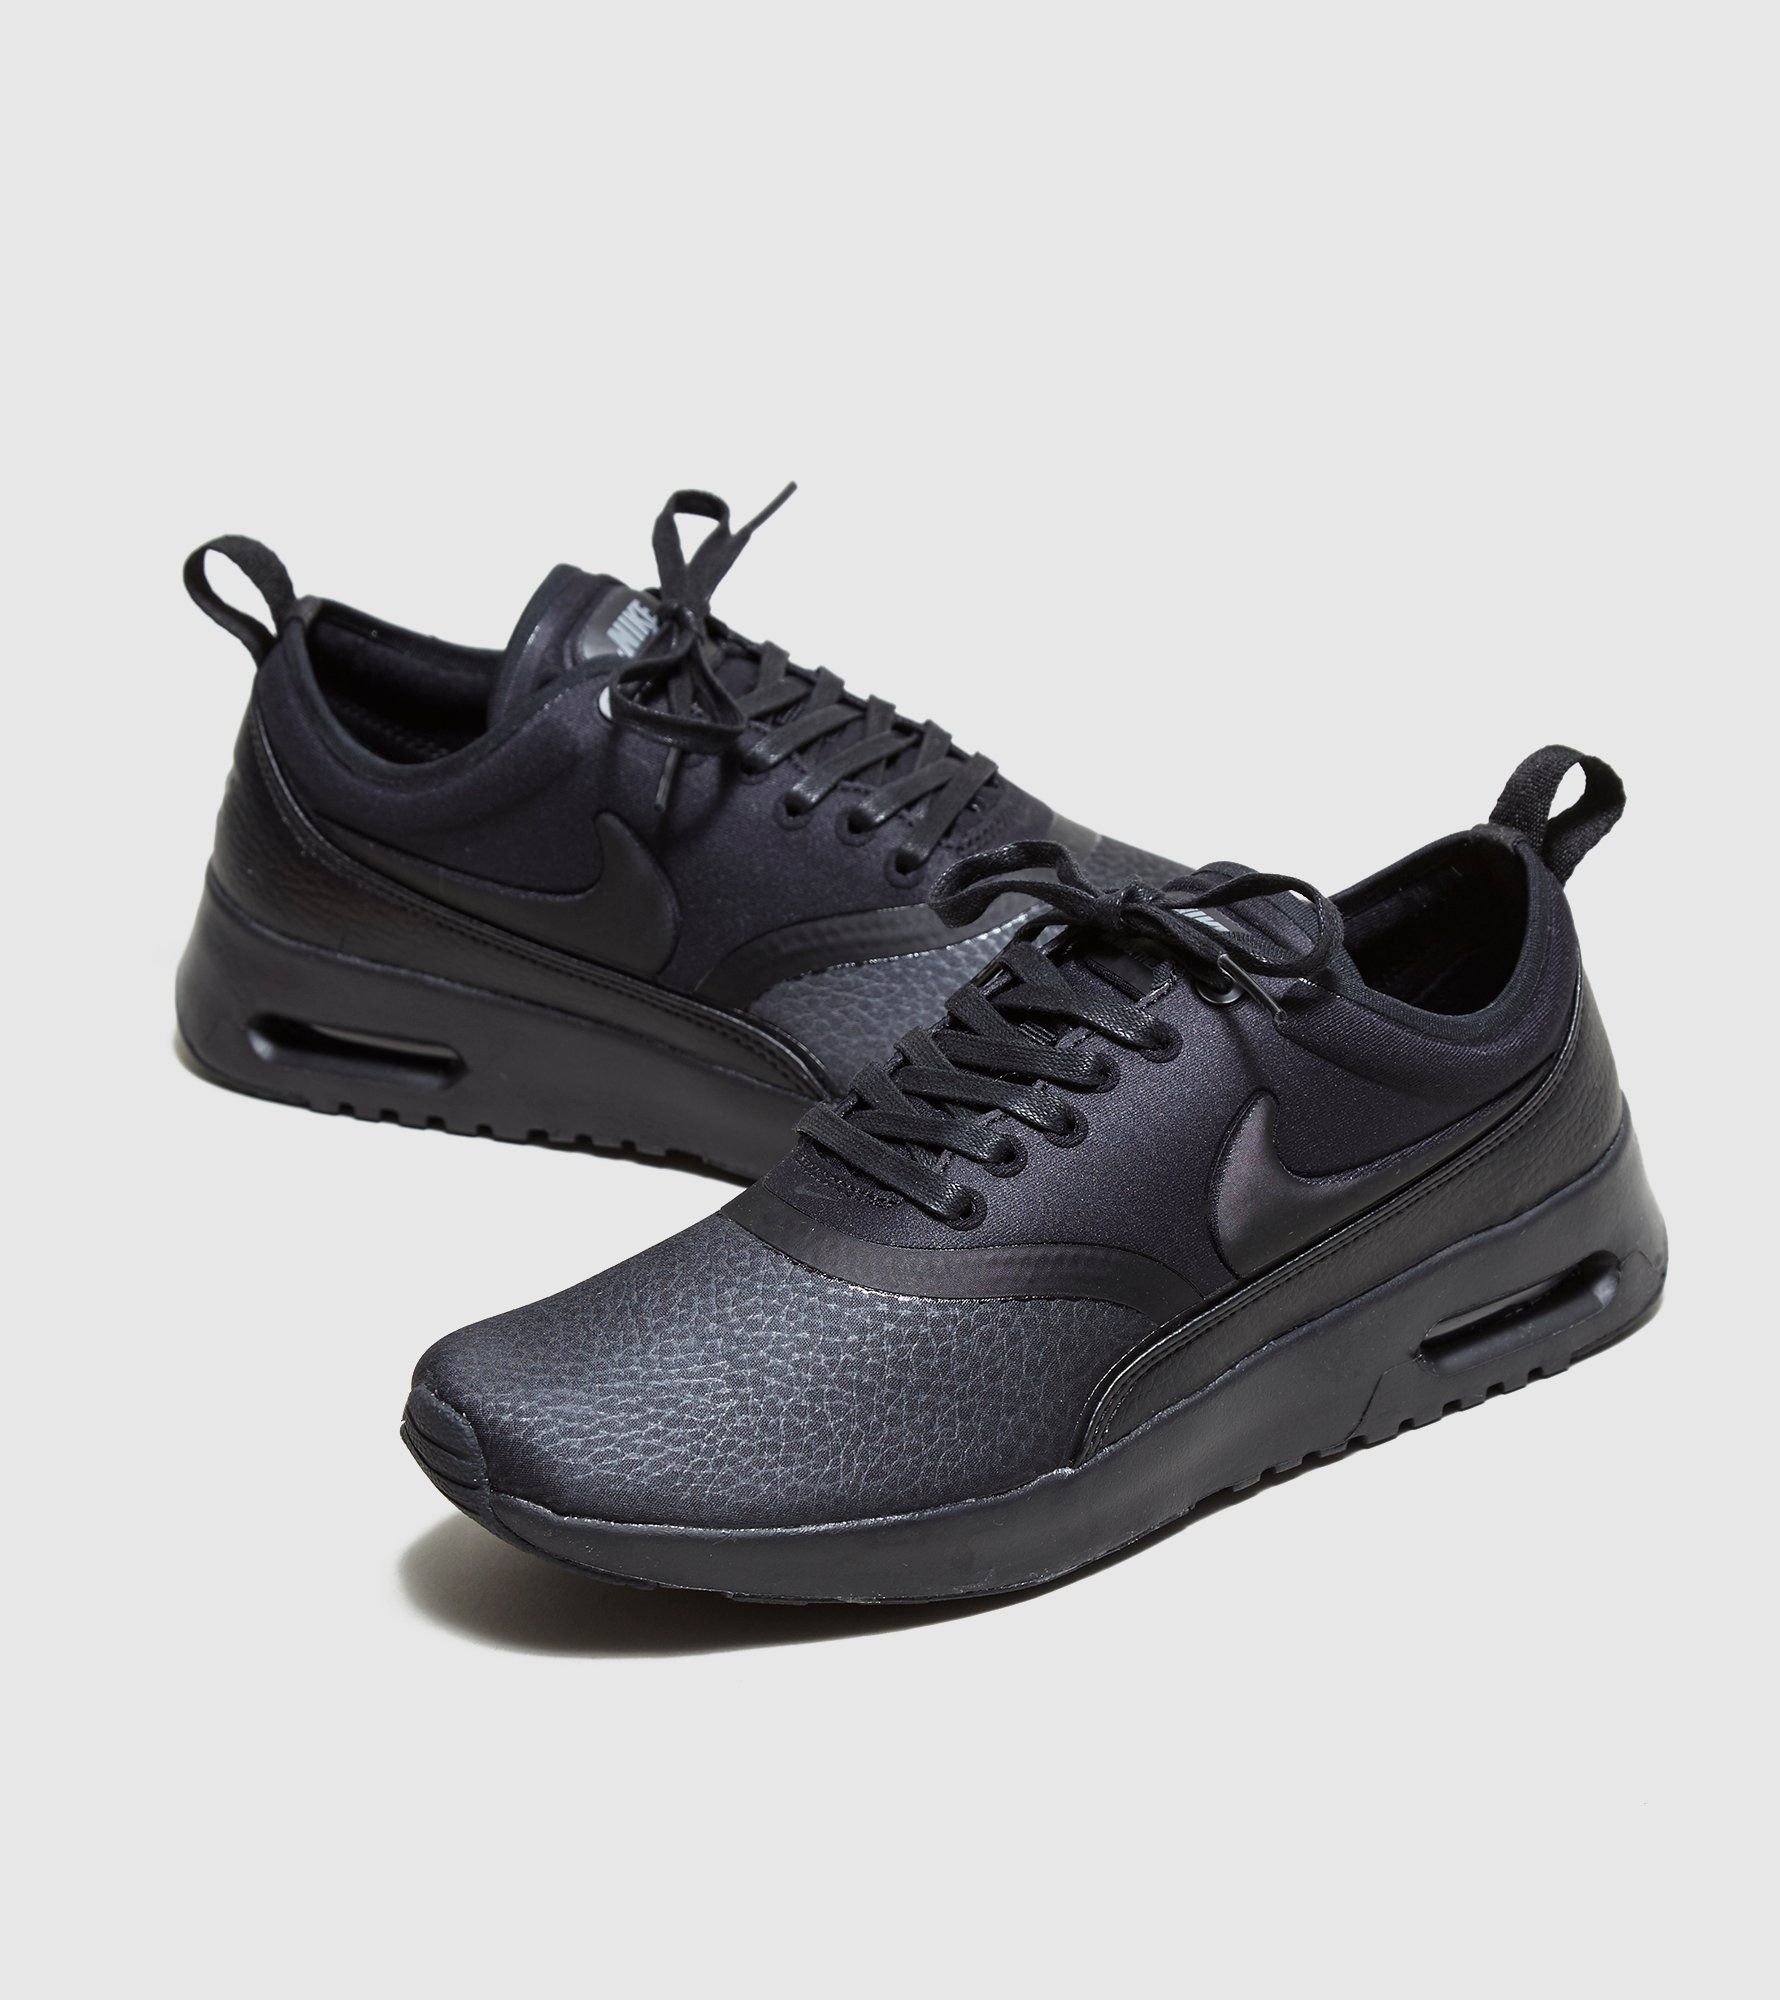 Nike Air Max Thea Ultra Premium - find out more on our site. Find the